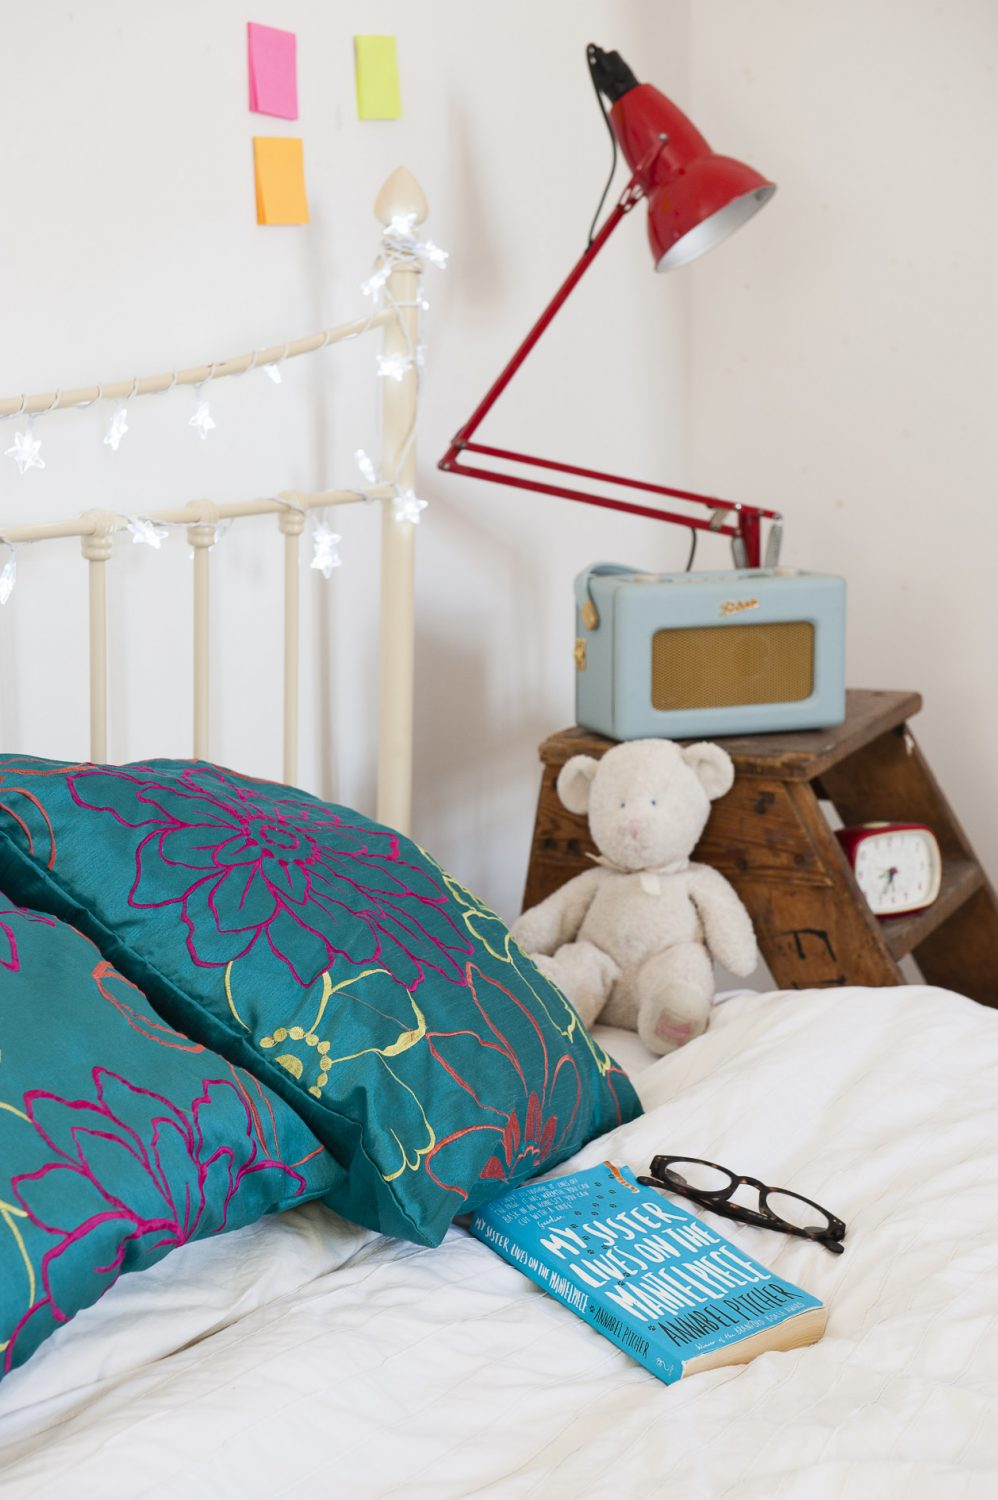 Their daughter's room with retro accessories